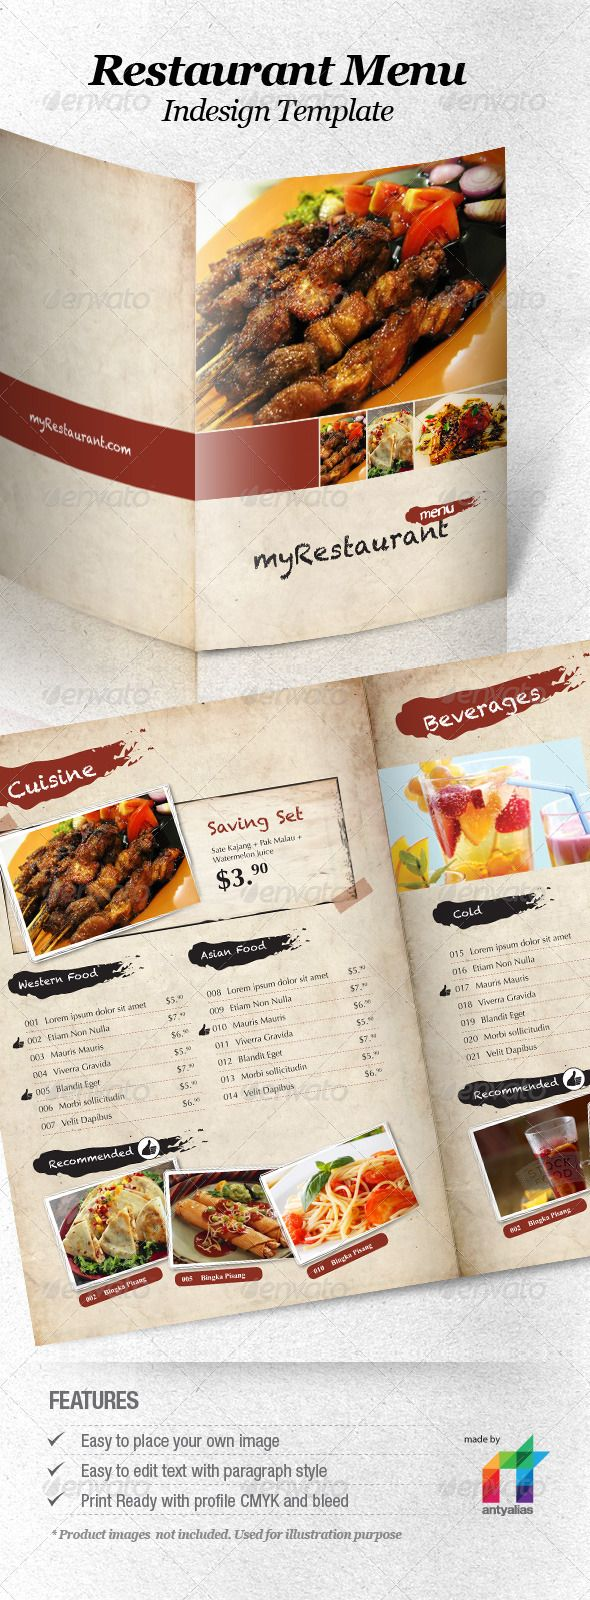 Restaurant Menu Indesign Template – Restaurant Menu Design Templates